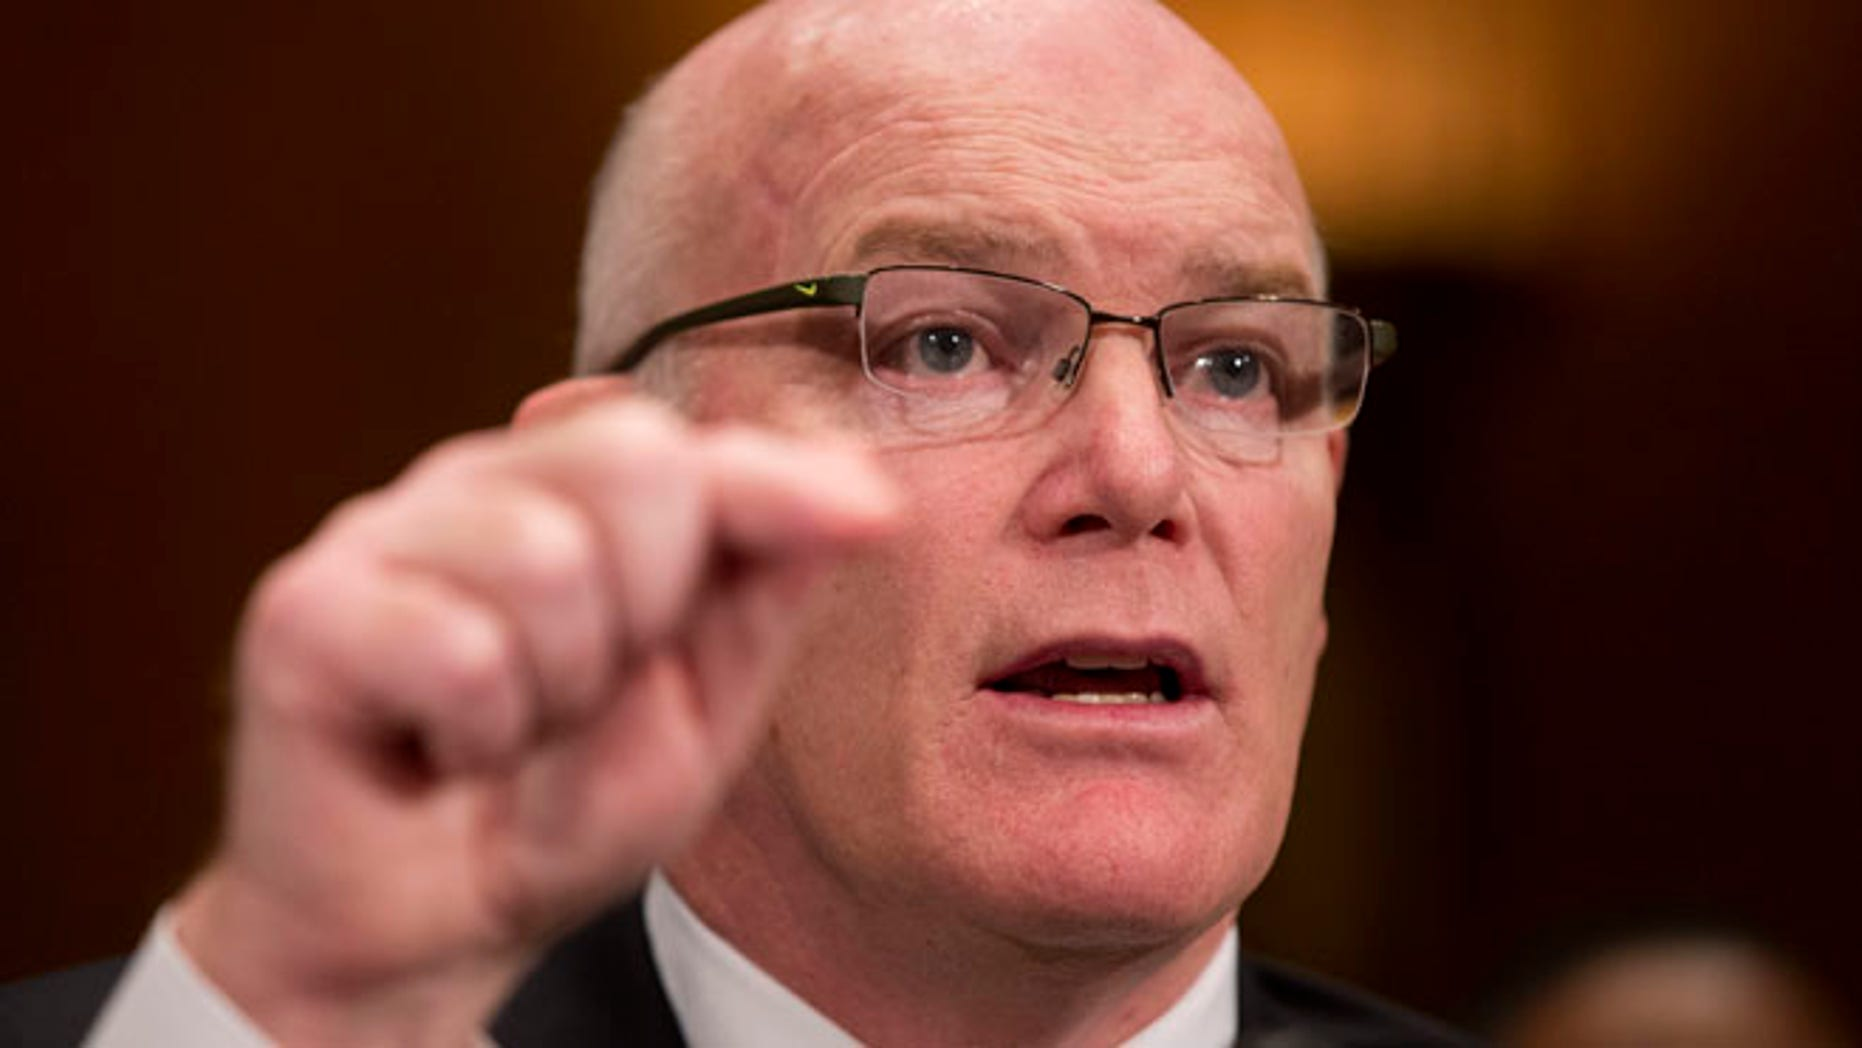 Mar. 19, 2015: Secret Service Director Joseph Clancy testifies on Capitol Hill in Washington before the Senate subcommittee on Regulatory Affairs and Federal Management hearing to review the fiscal 2016 funding request and budget justification for the Secret Service.